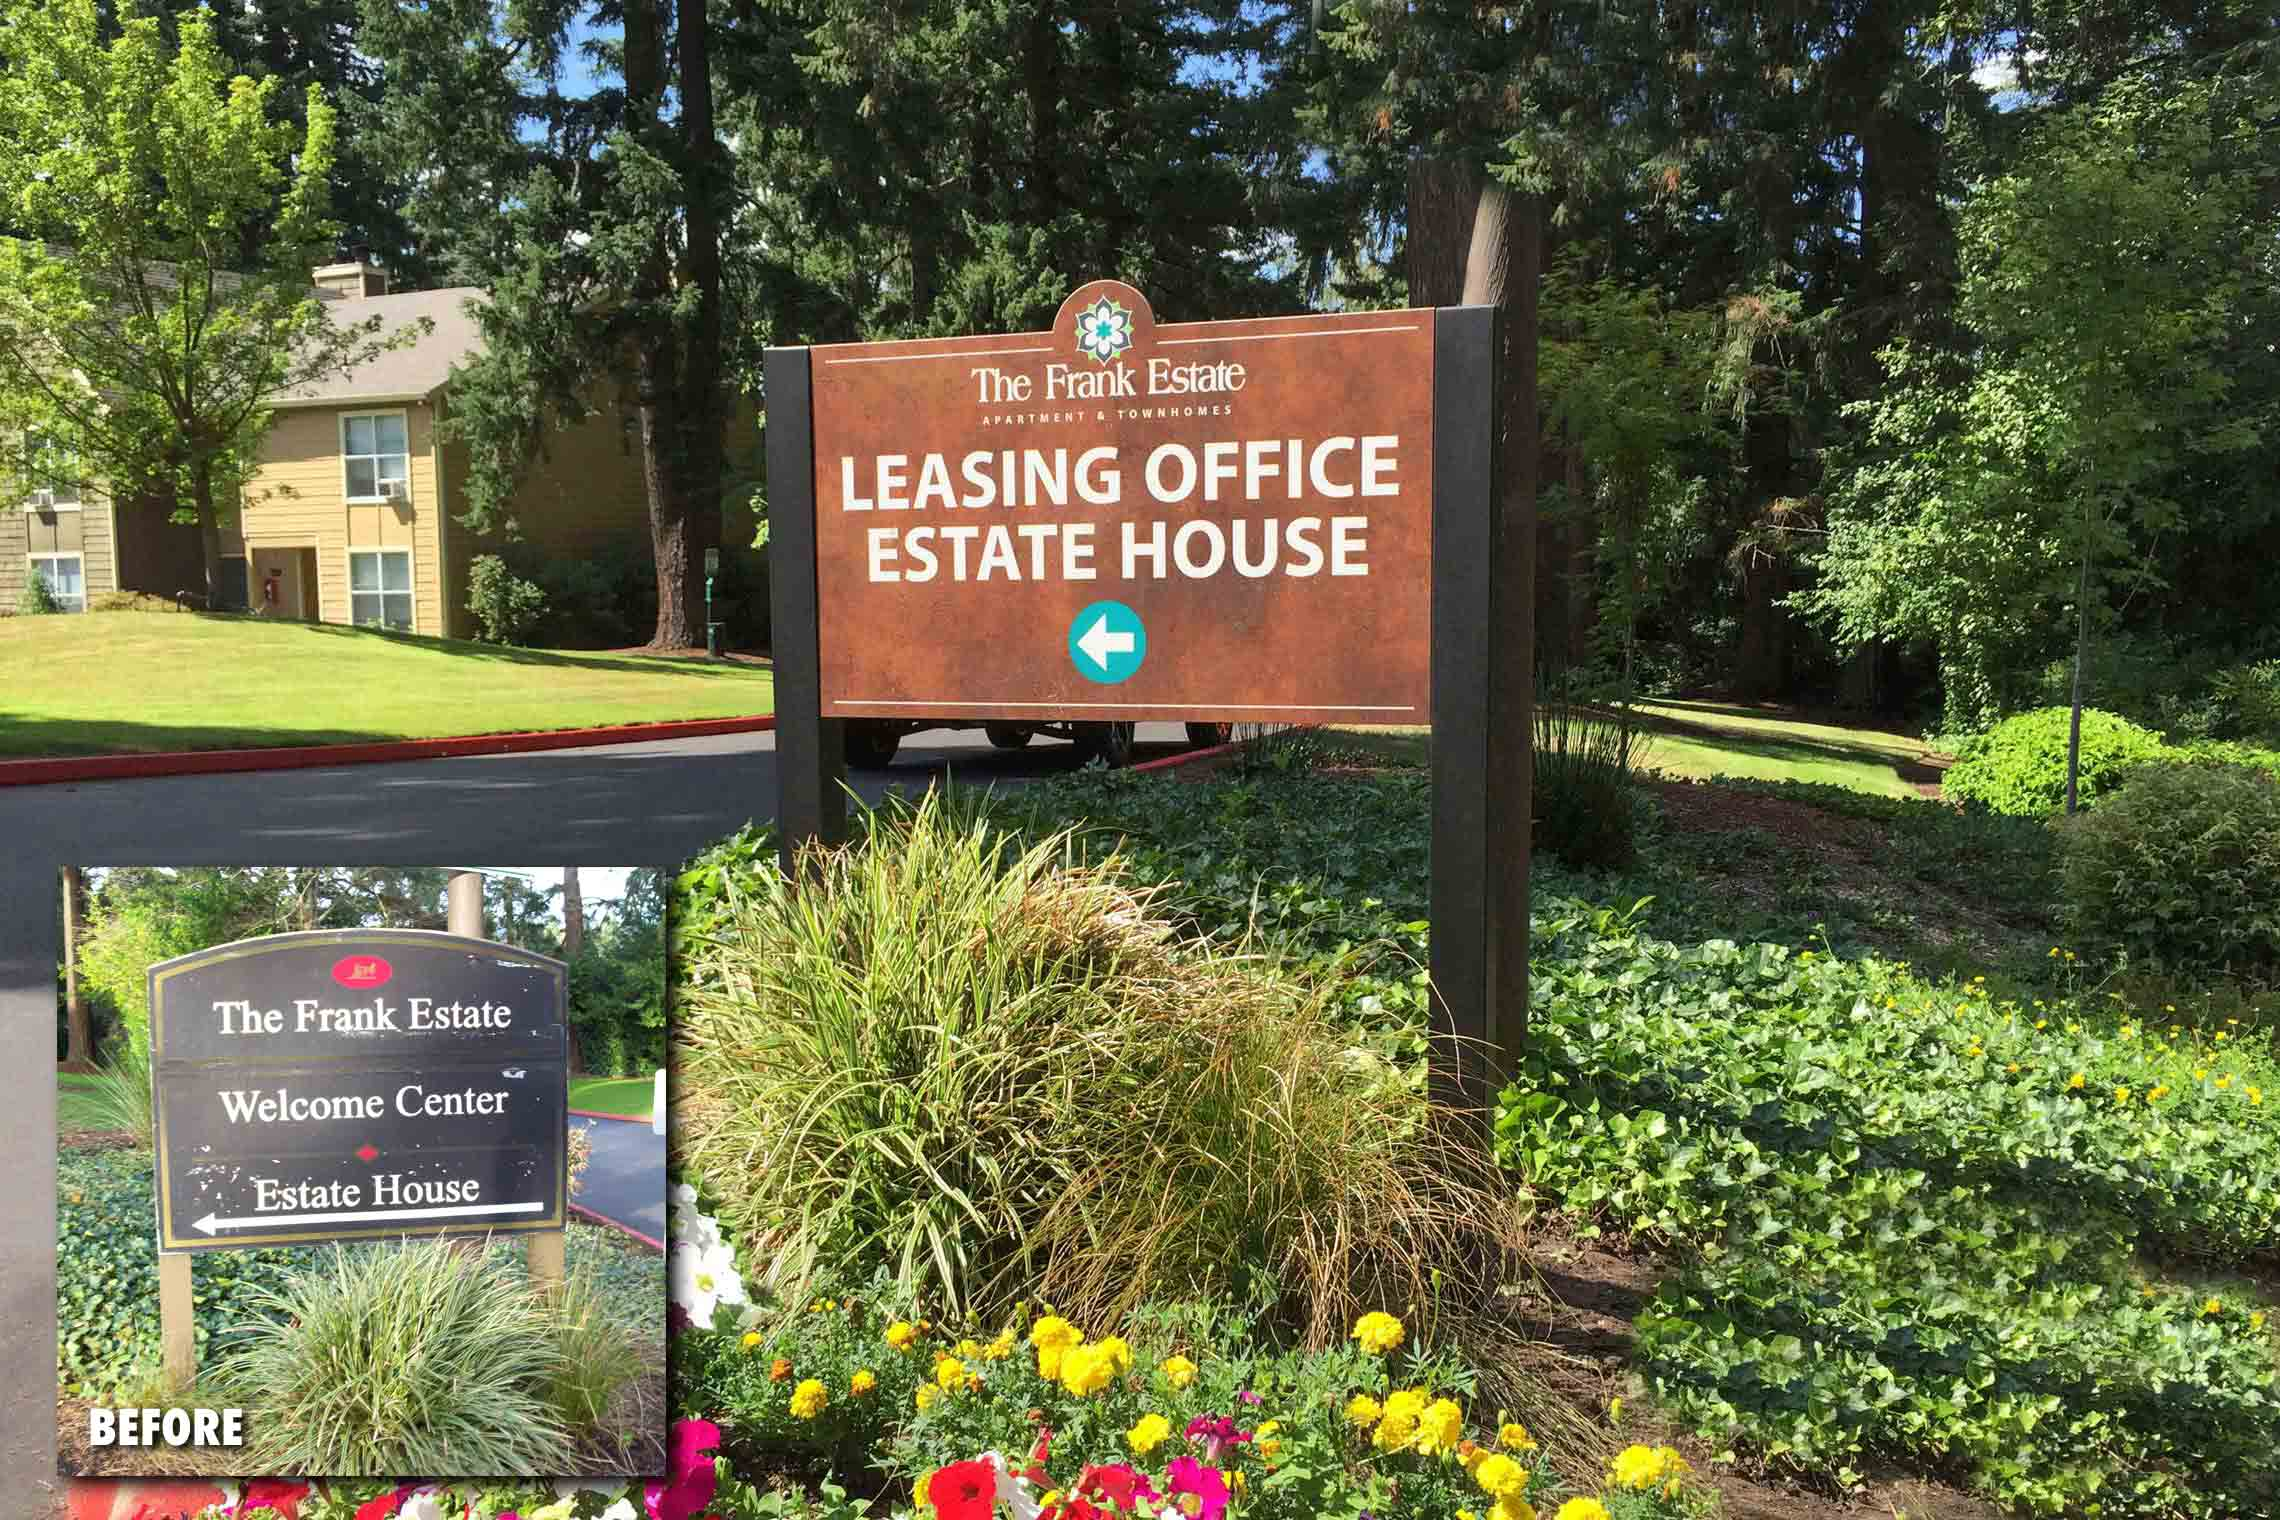 The Frank Estate Apartment & Townhomes Leasing Office Estate House Directional on Post